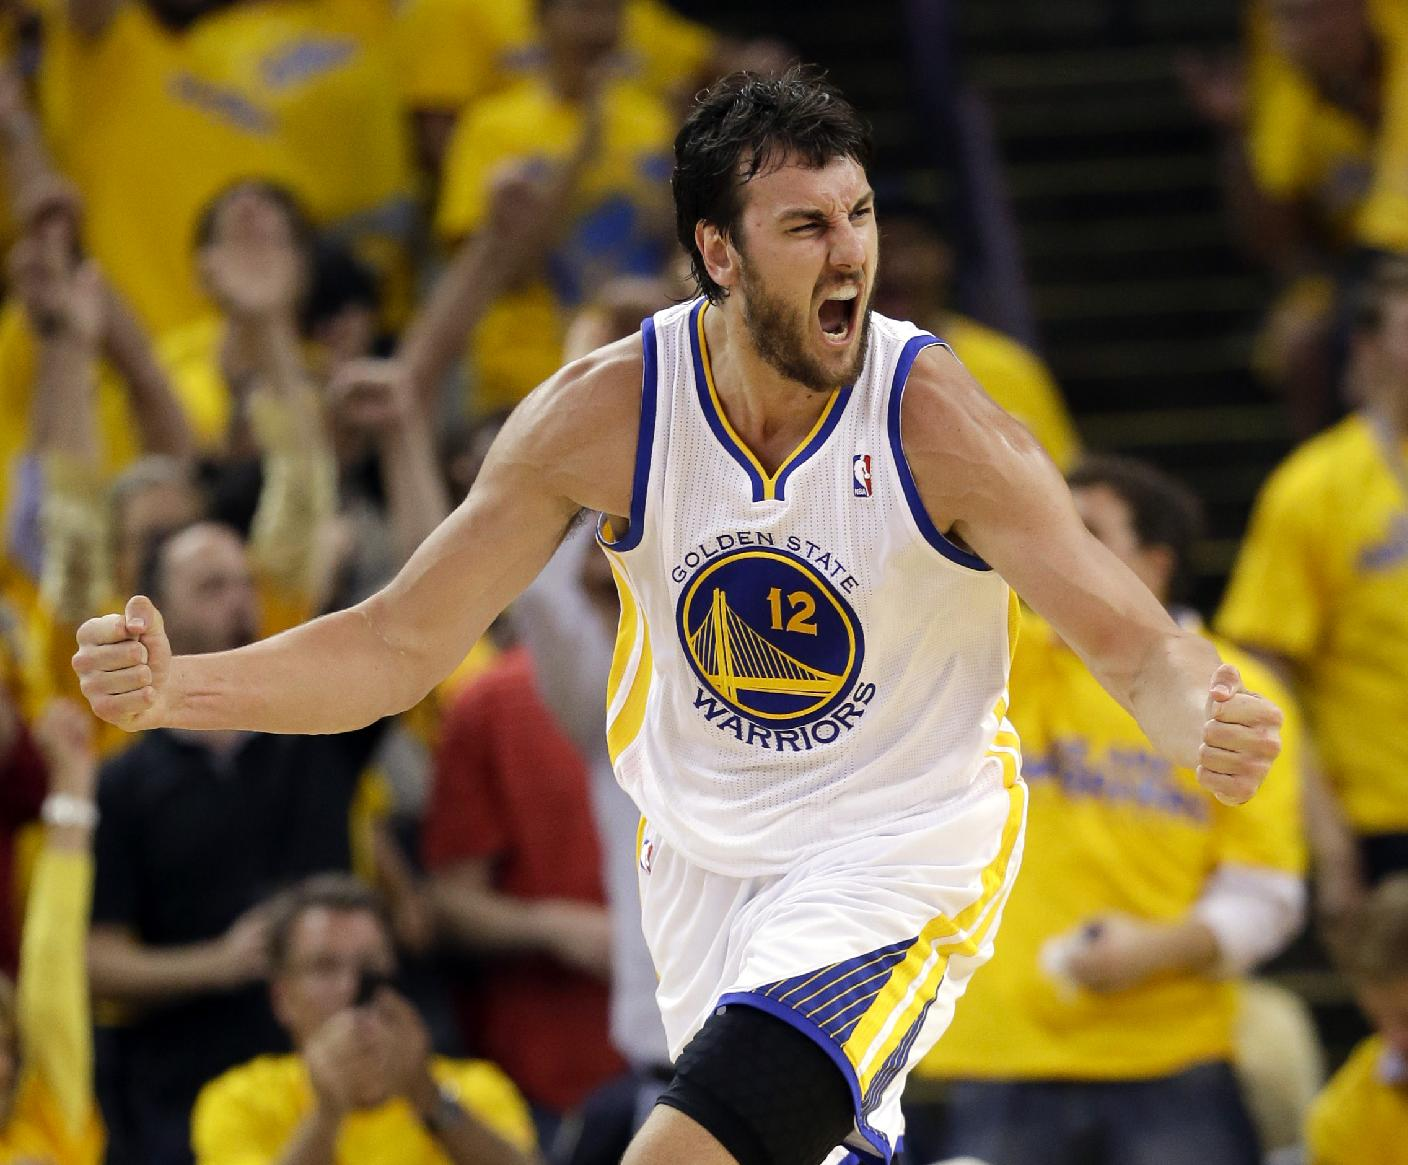 In this May 2, 2013 file photo, Golden State Warriors' Andrew Bogut celebrates scoring against the Denver Nuggets during an NBA basketball game in Oakland, Calif. Bogut says he is